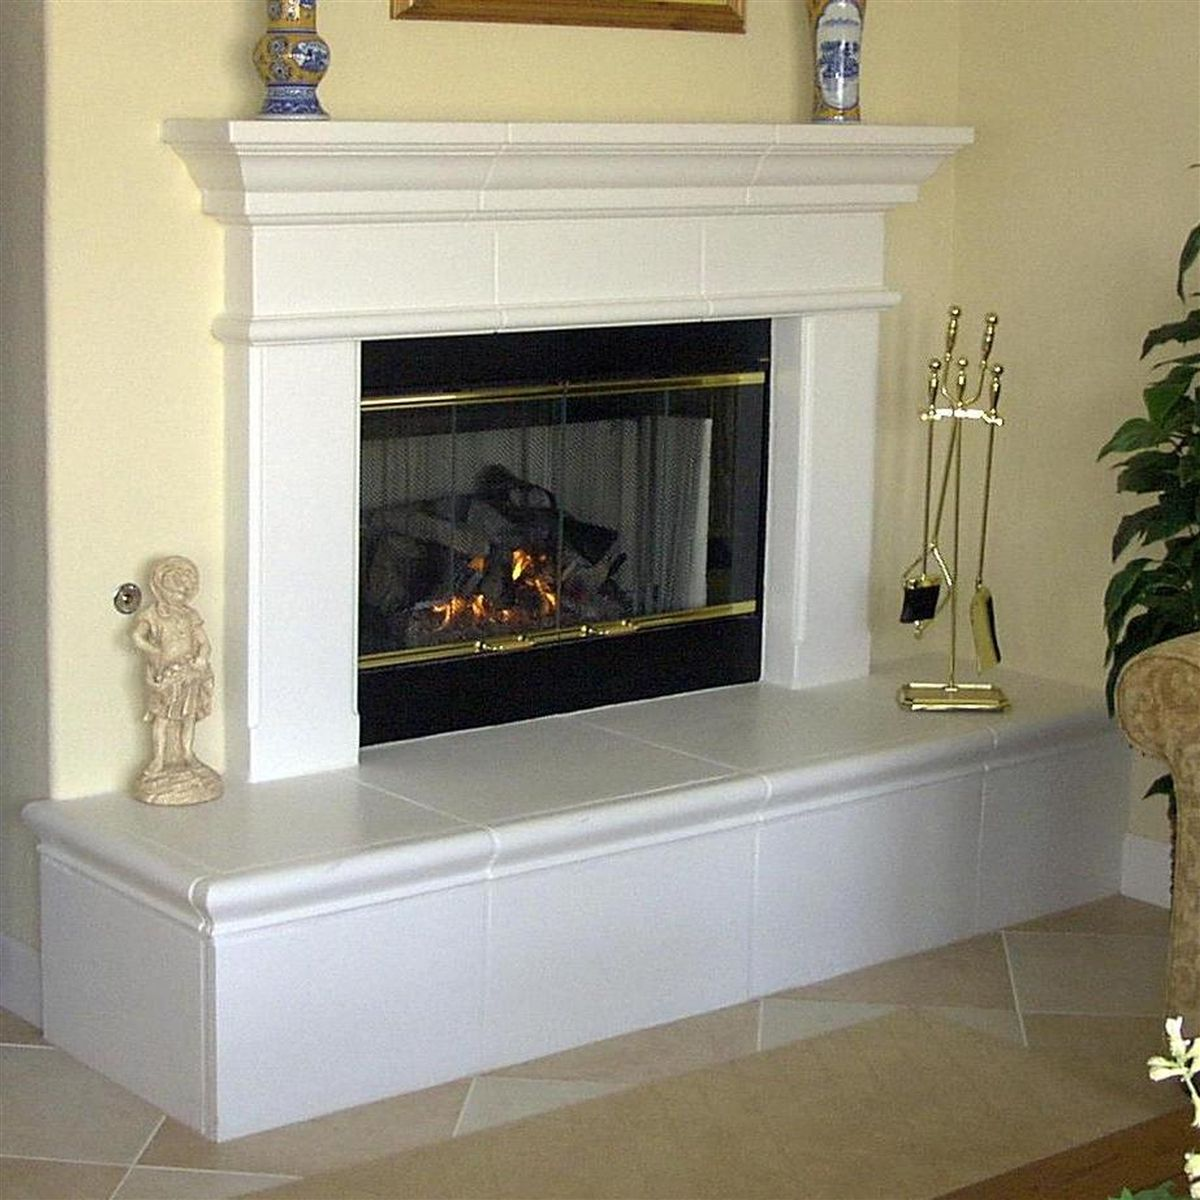 Fireplace Raised Hearth Updated With Wood Trim Google